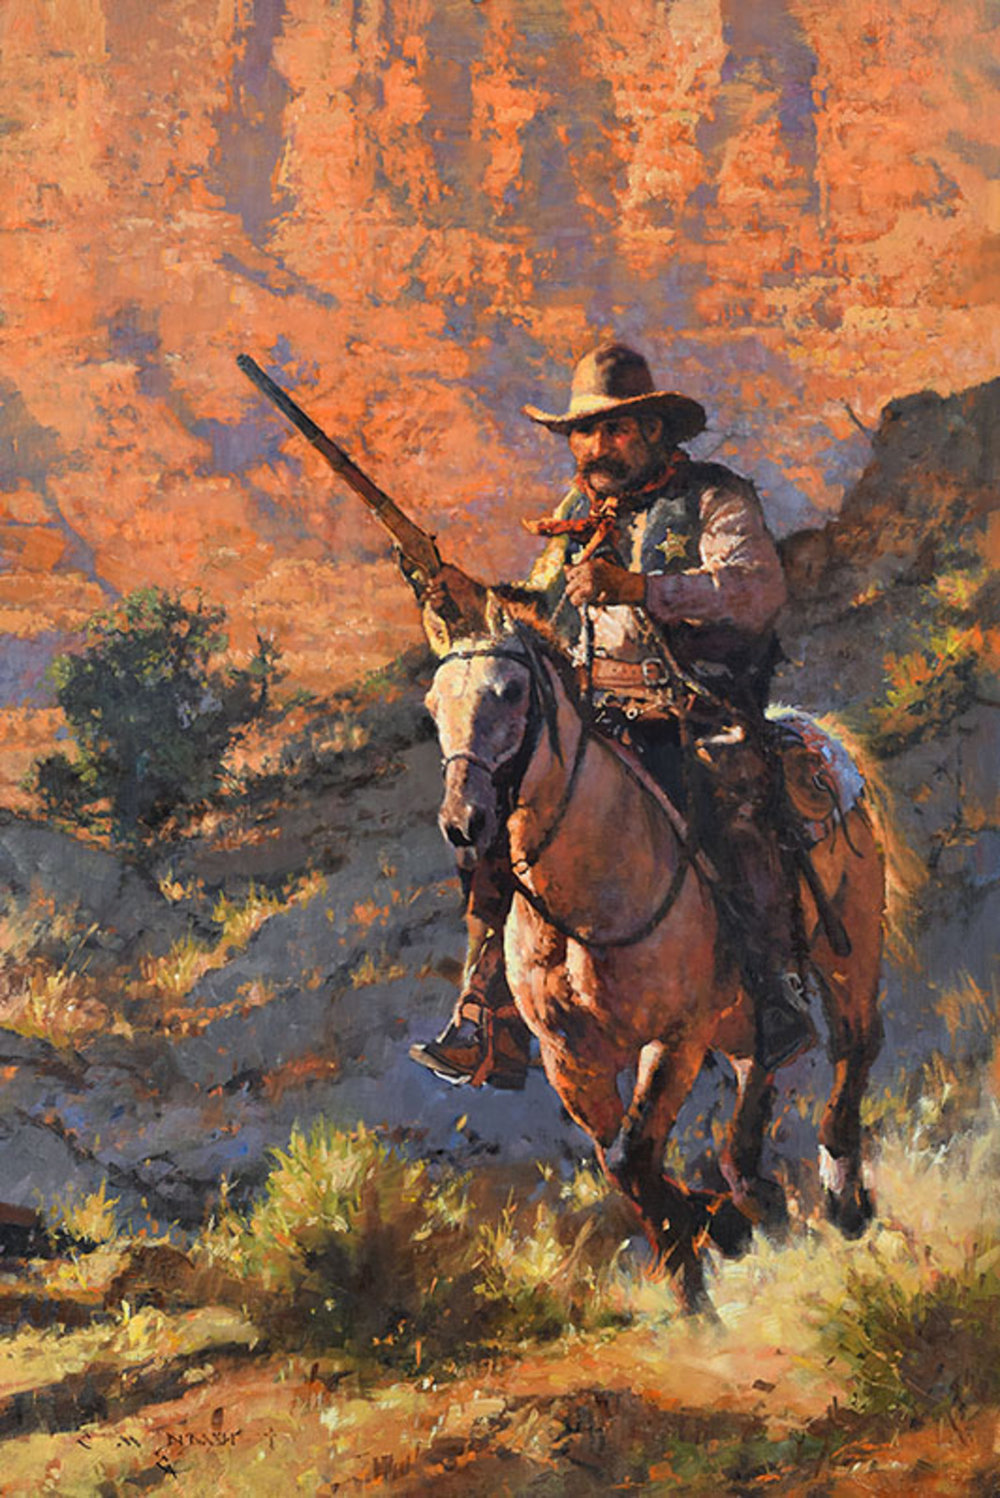 """""""ON THE OUTLAW TRAIL"""" - oil on linen - 36"""" x 24"""" Sold at  PRIX DE WEST  , The National Cowboy & Western Heritage Museum Oklahoma City, OK June 7-9, 2018"""